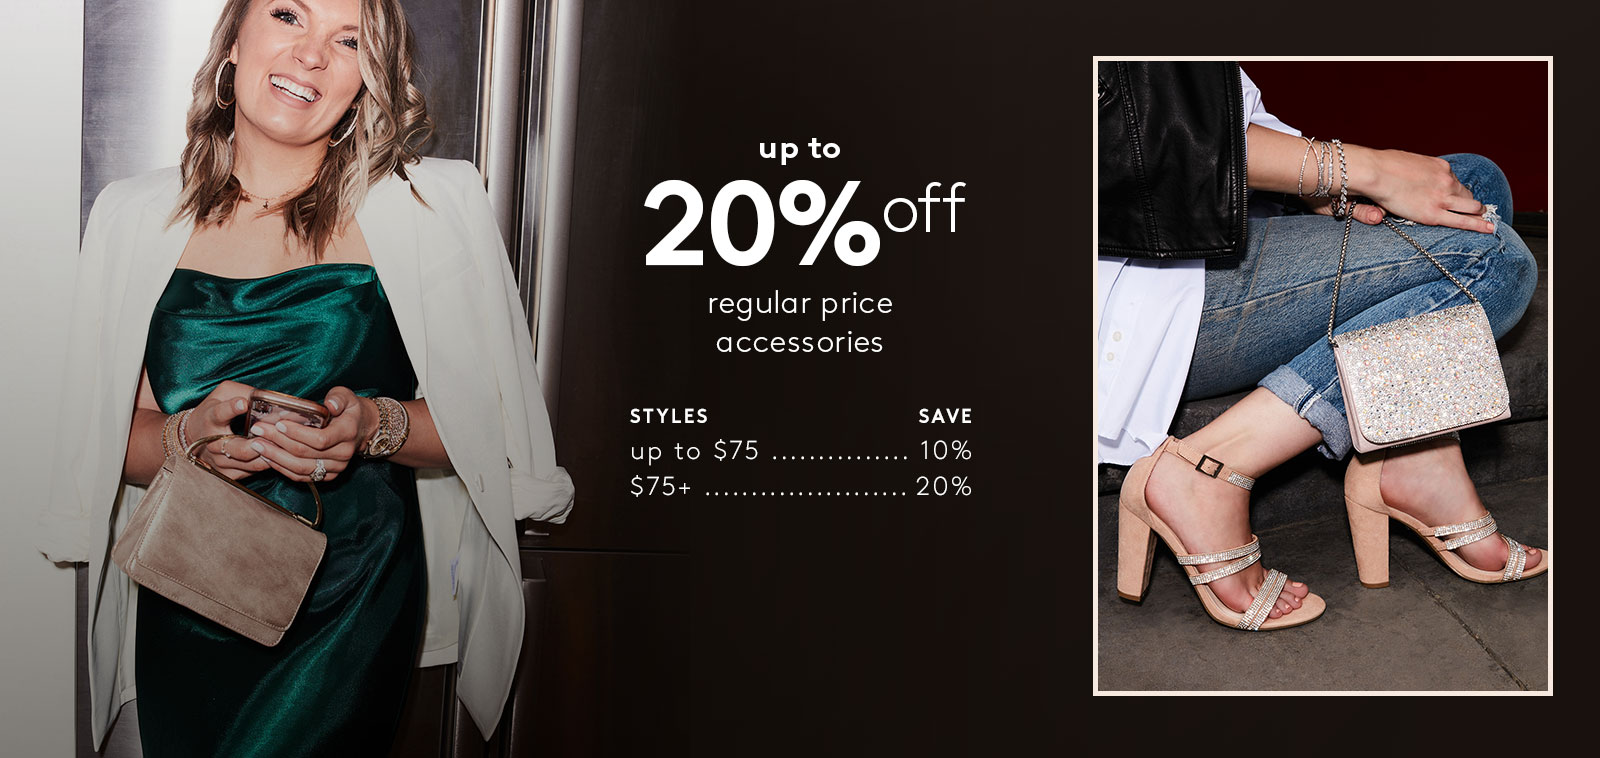 up to 20% off regular price accessories - Spend up to $75 Save 10% | Spend $75+ Save 20